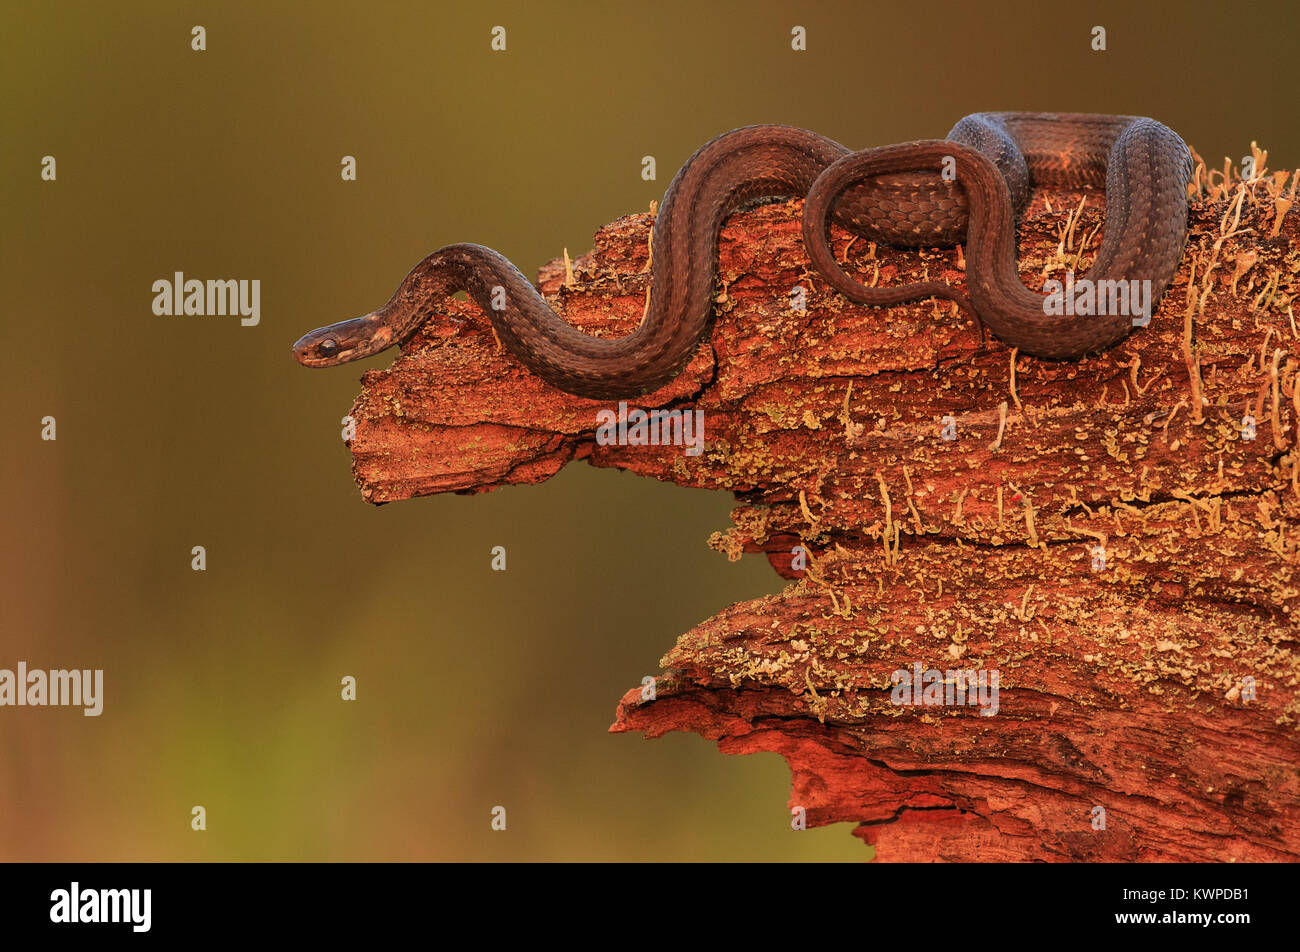 A Red-bellied Snake emerges from the log pile. - Stock Image